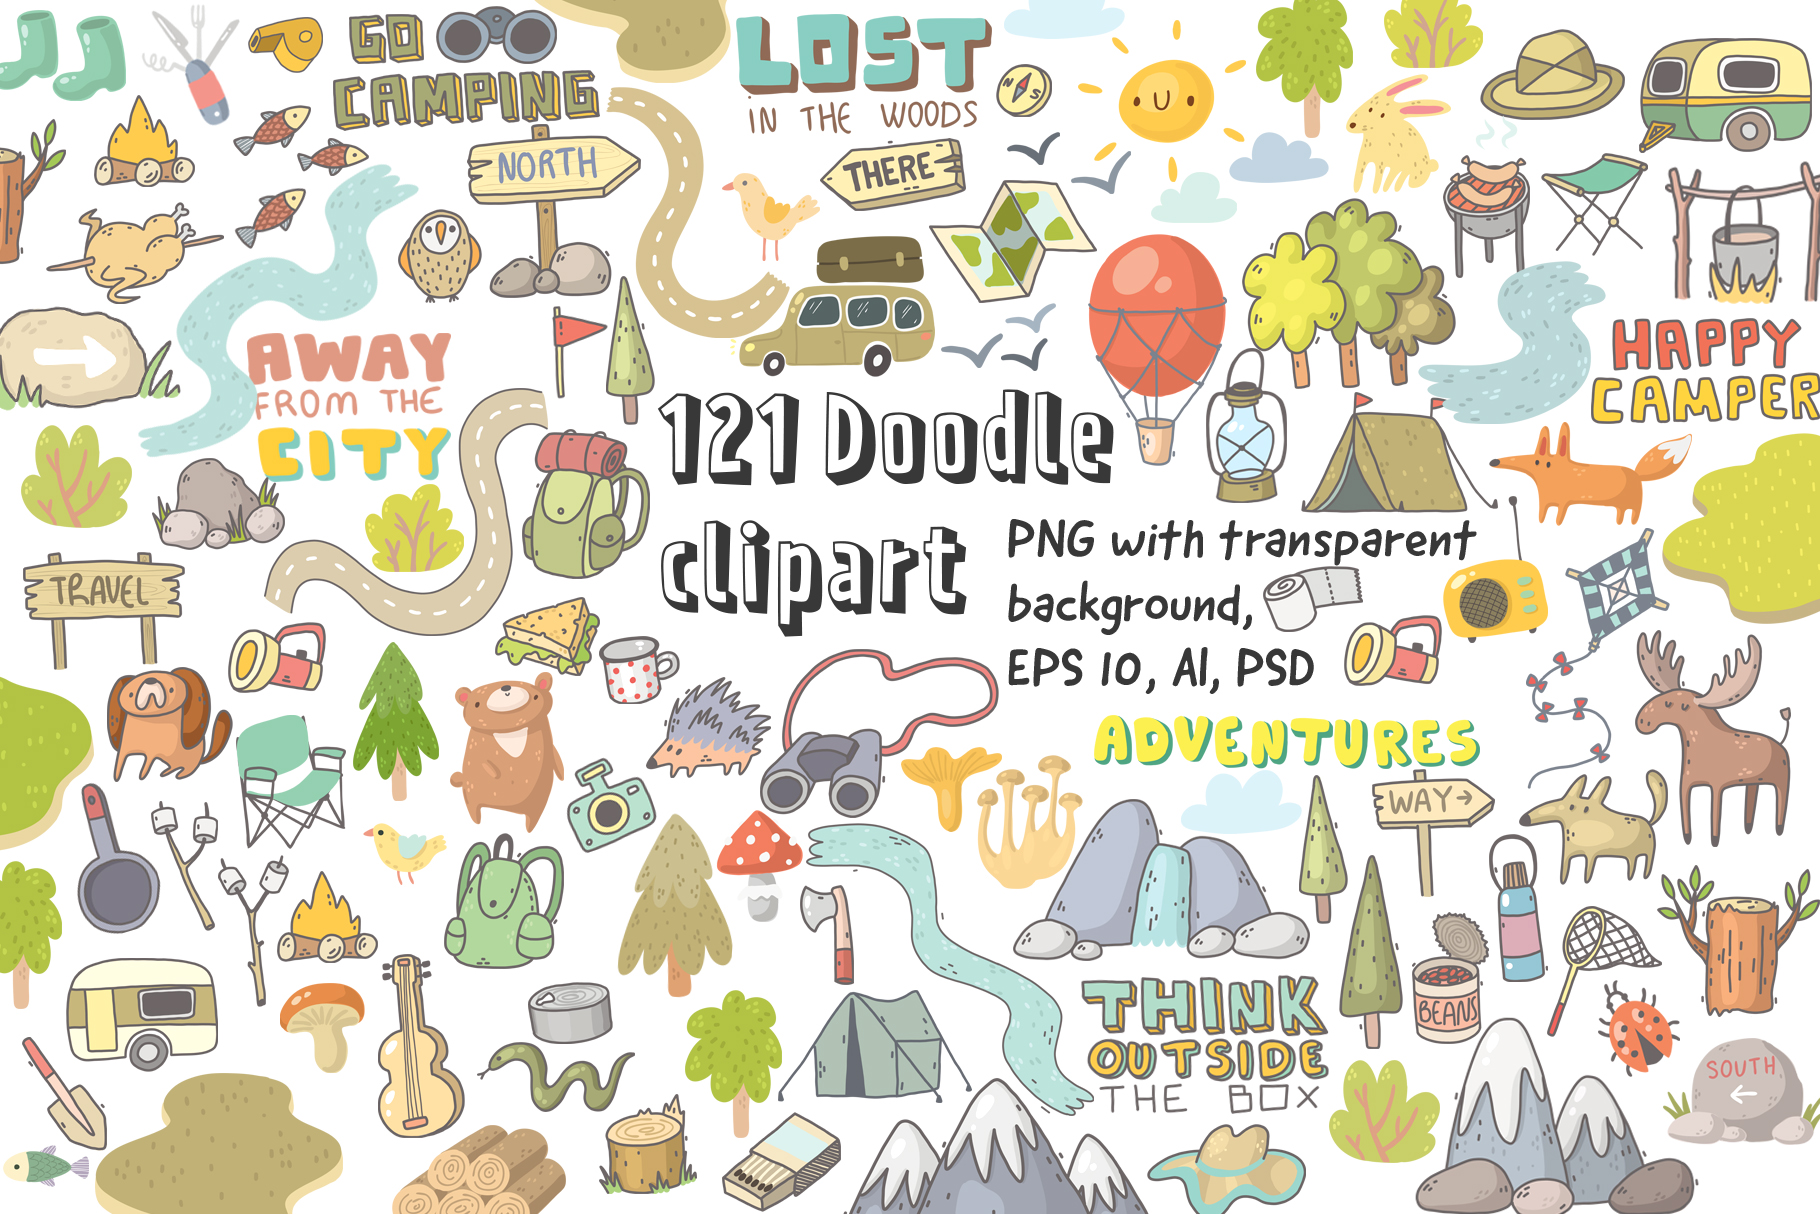 Camping clipart, patterns, designs example image 2